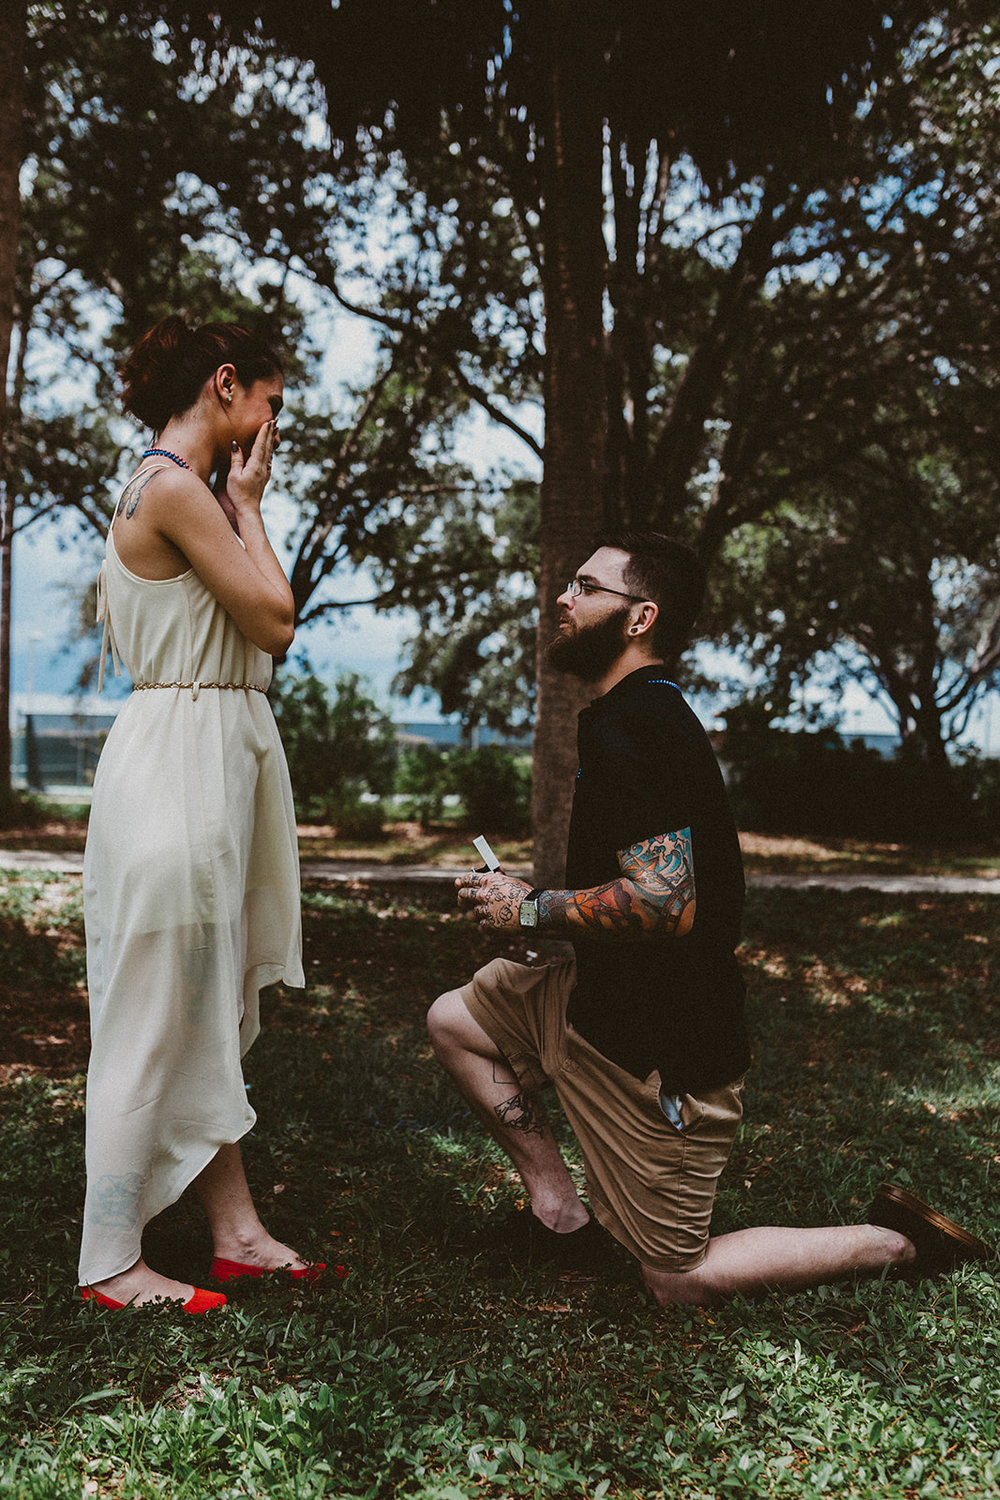 Man gets down on one knee at Three Oaks Park and proposes as girlfriend holds her face in surprise